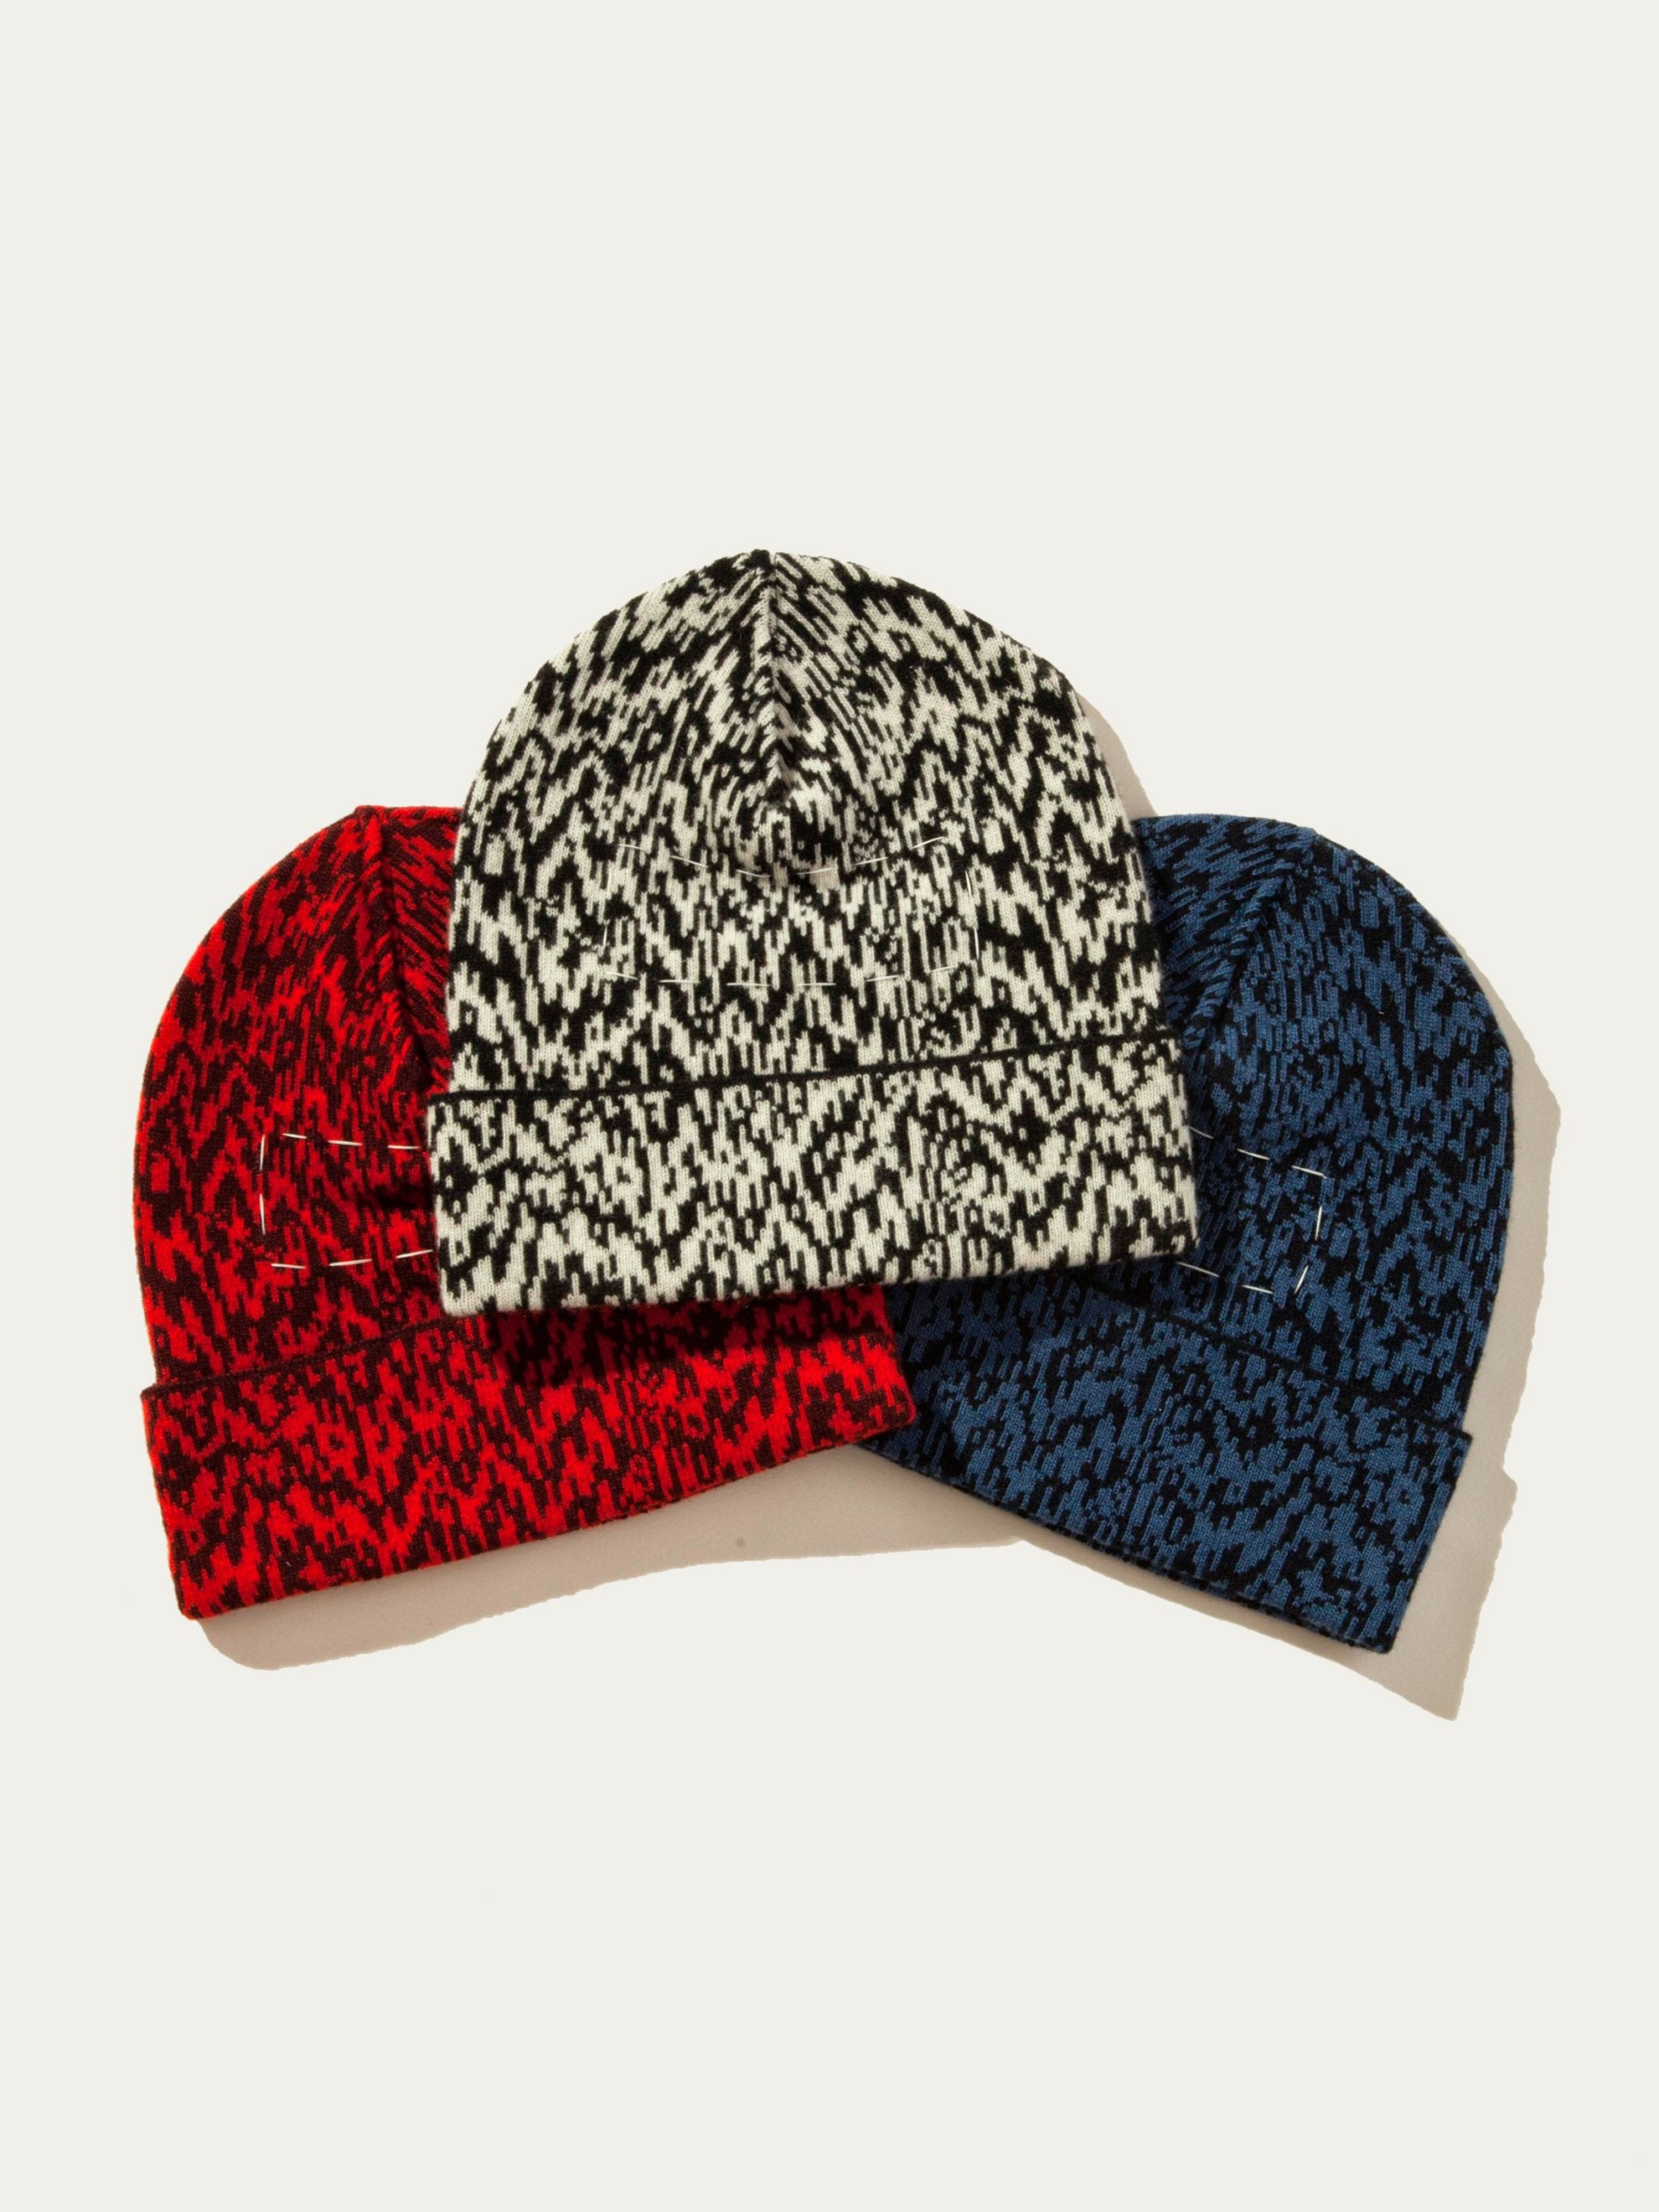 Interference Knit Cap